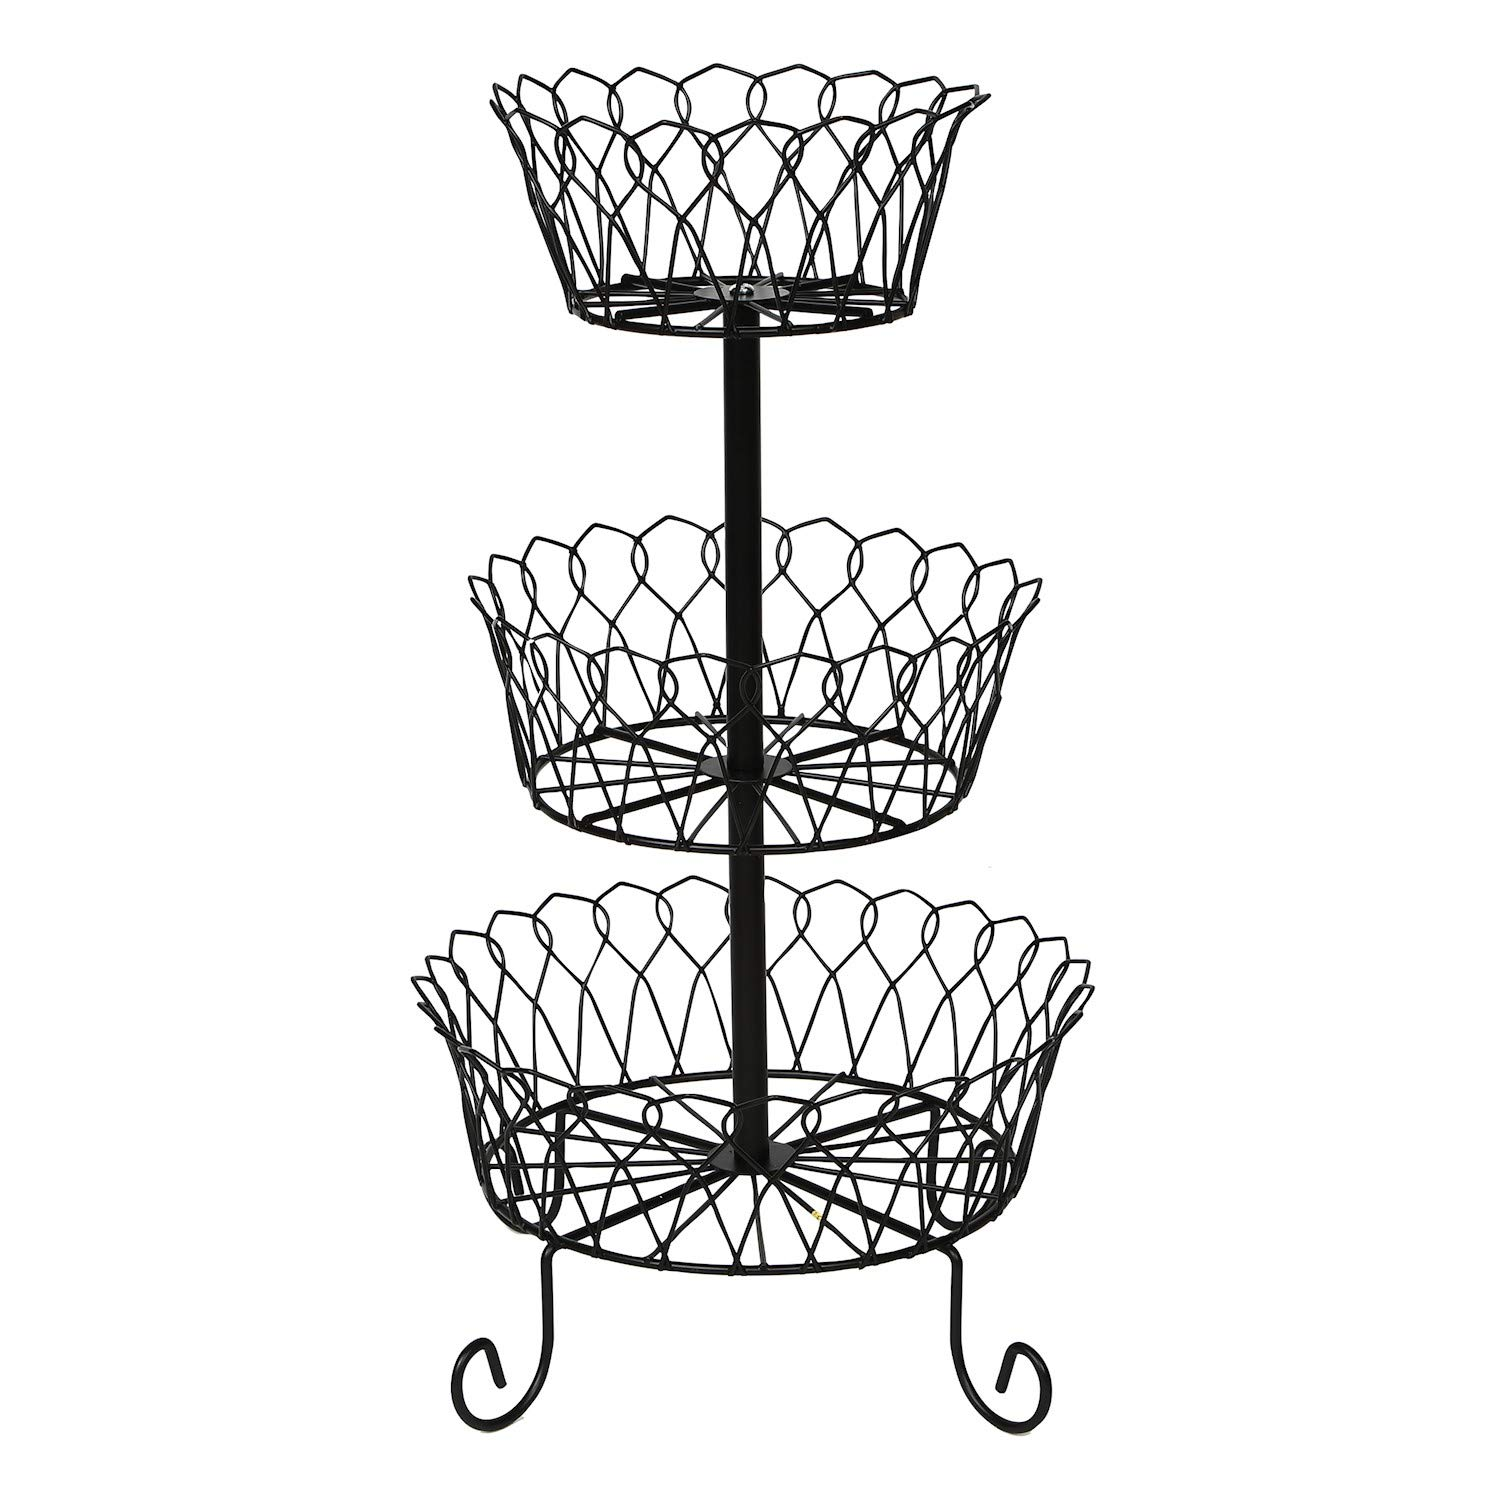 Home District 3-Tier Iron Fruit Basket Stand - Countertop Wire Food Storage